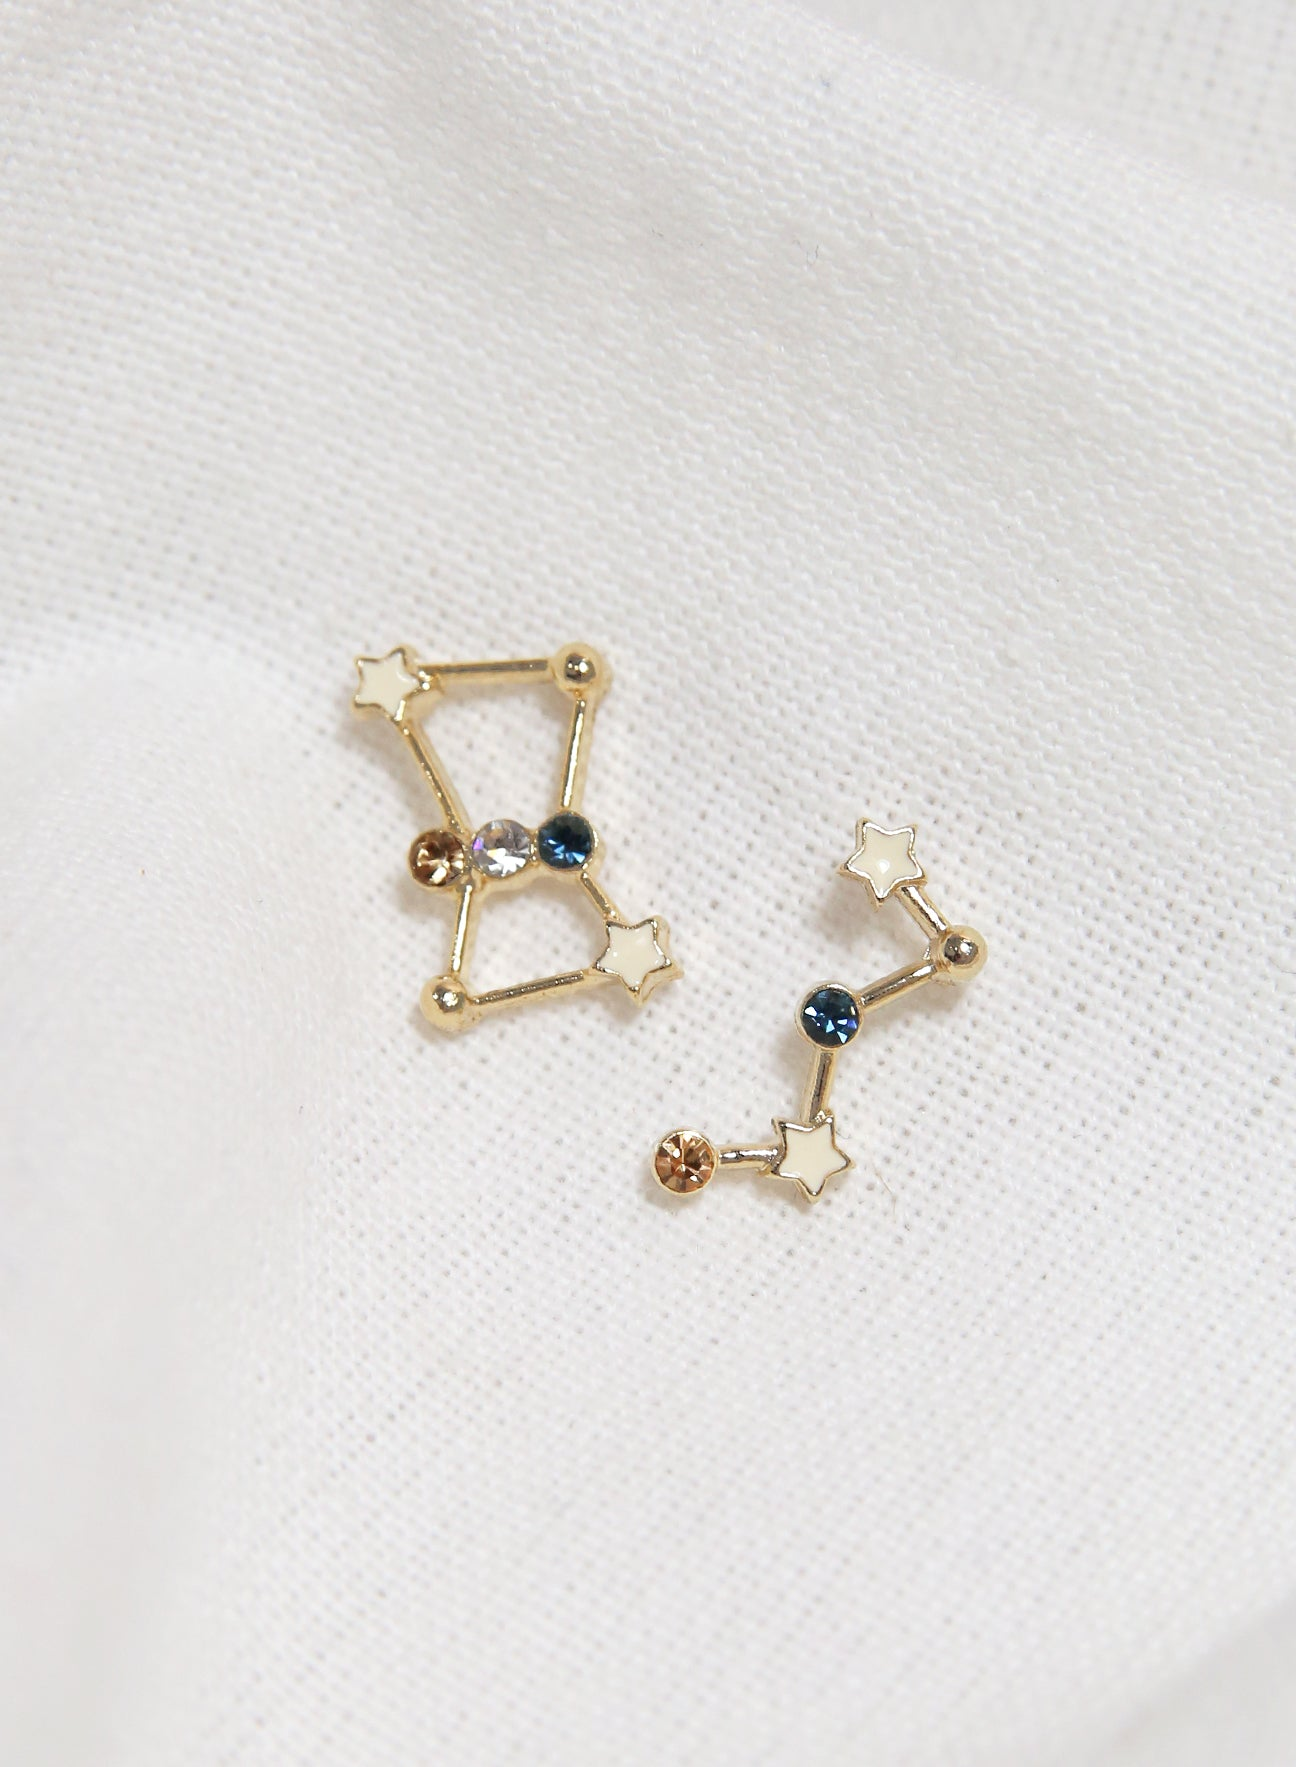 Cassiopeia Constellation Earrings